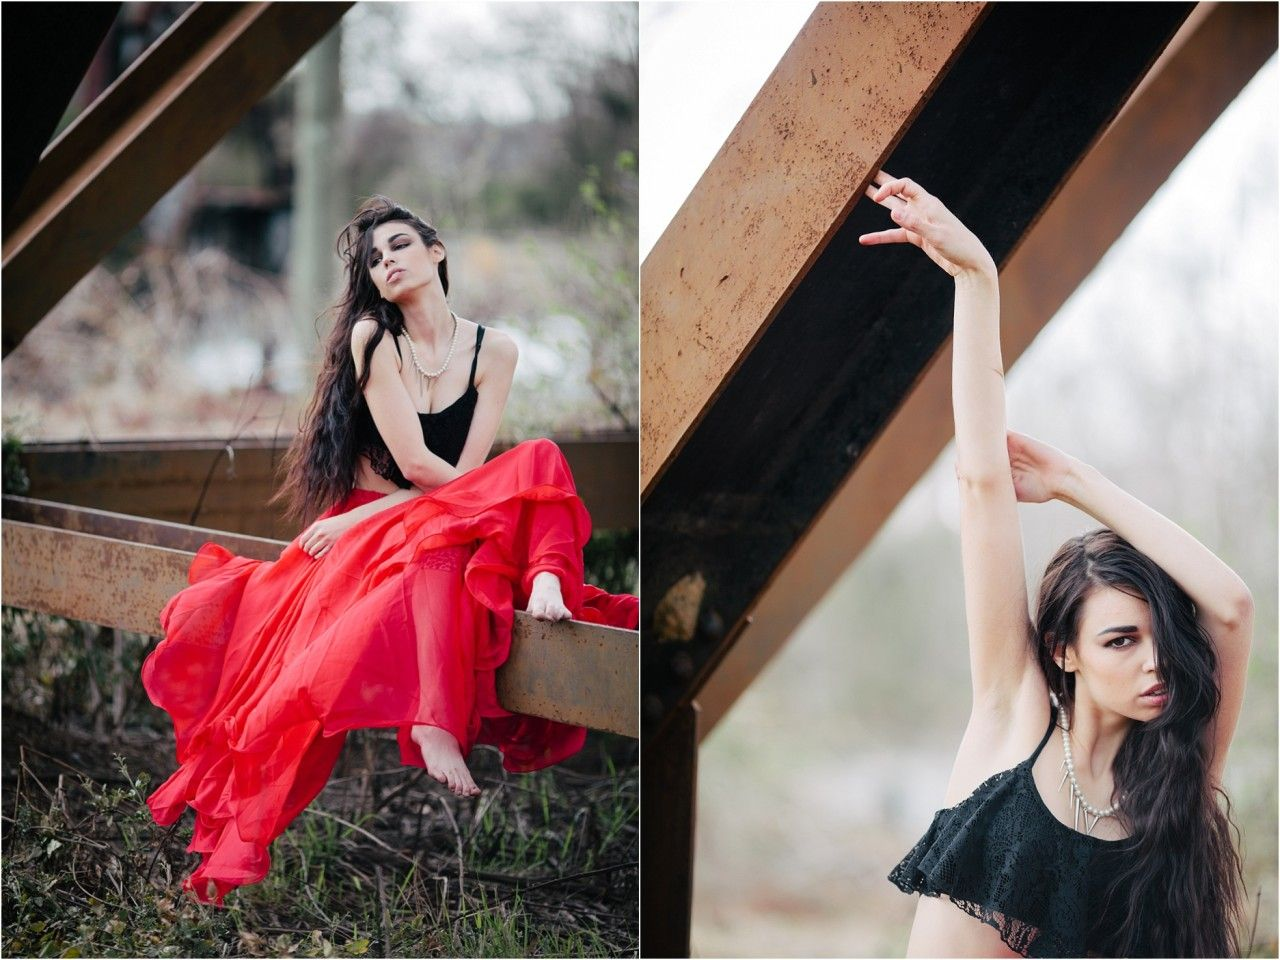 posing women, flamenco inspired fashion photography, red